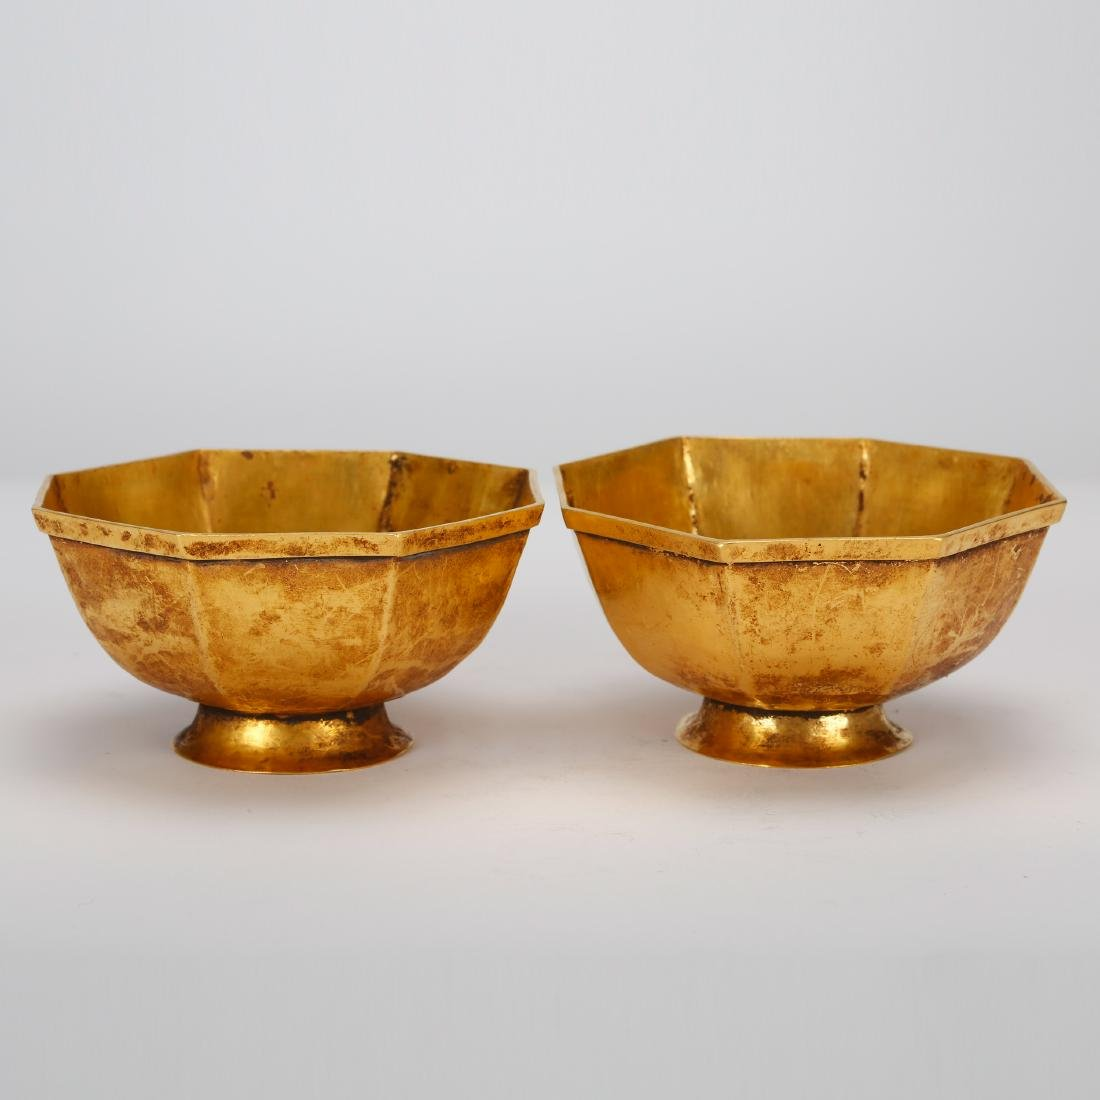 CHINESE QING DYNASTY GOLD BOWL, PAIR